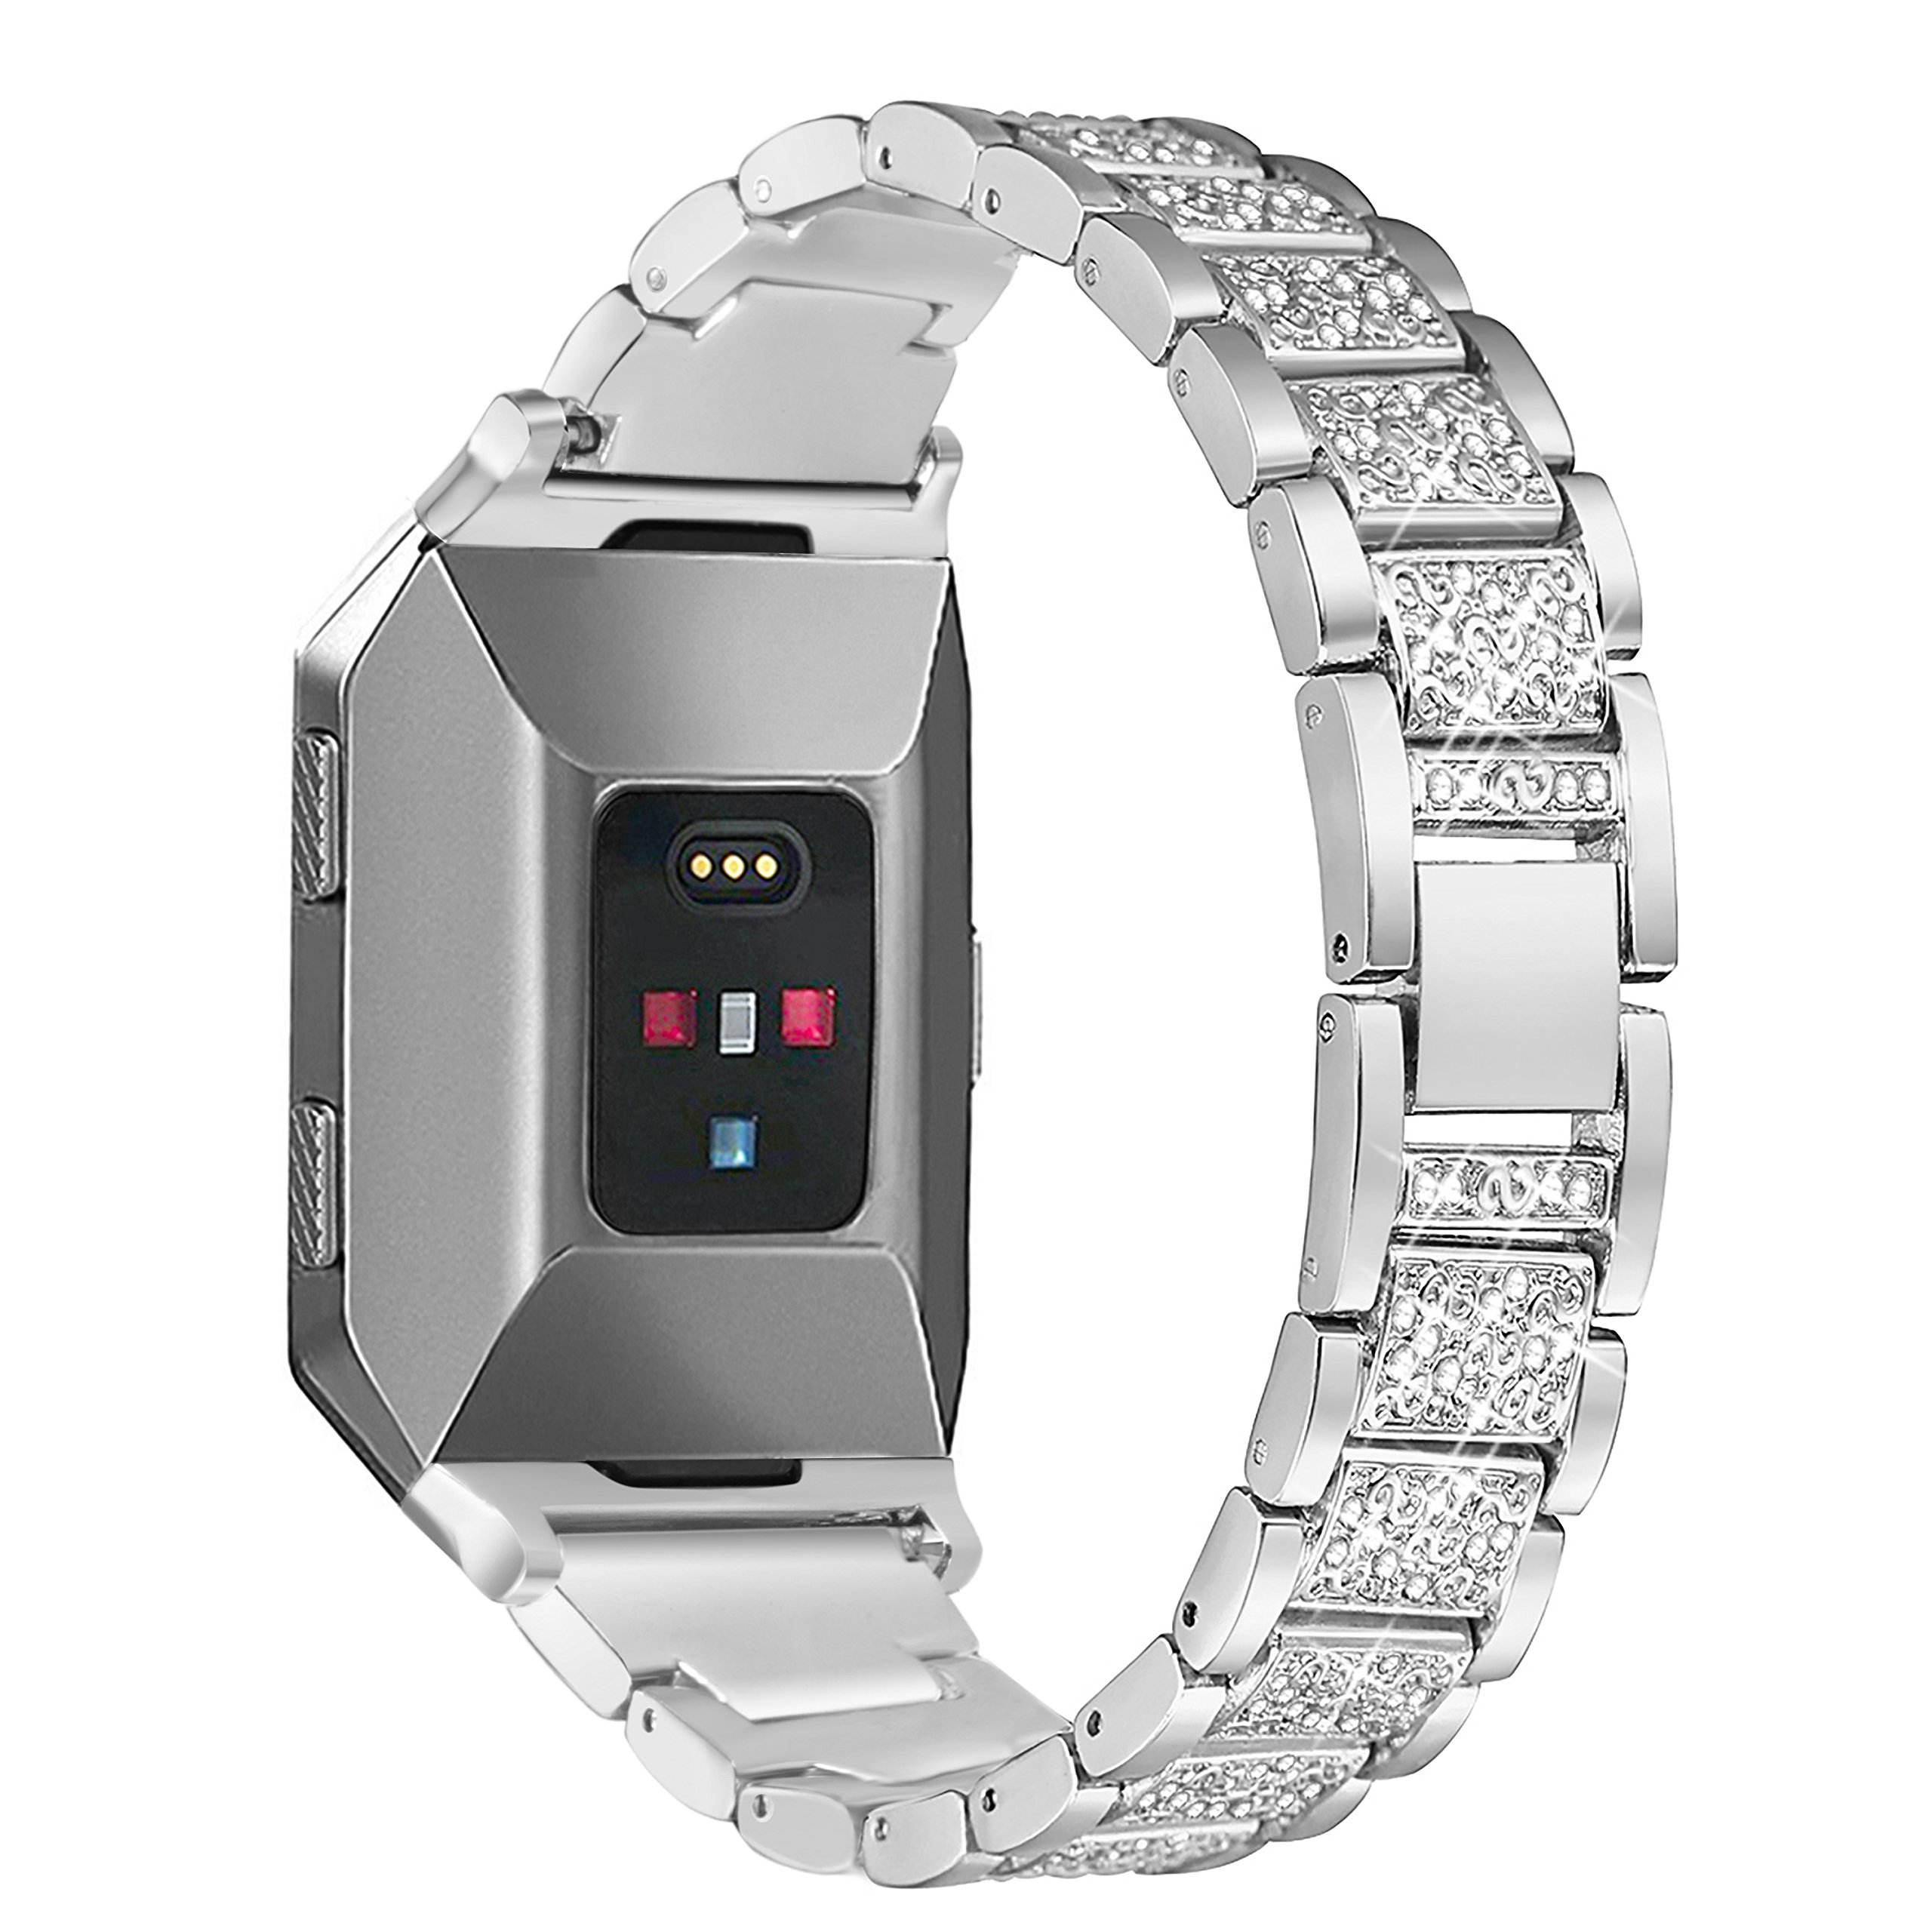 bayite For Fitbit Ionic Replacement Metal Bands, Bracelet Adjustable Bling Band Wristband with Rhinestone For Fitbit Ionic Smart Watch Silver